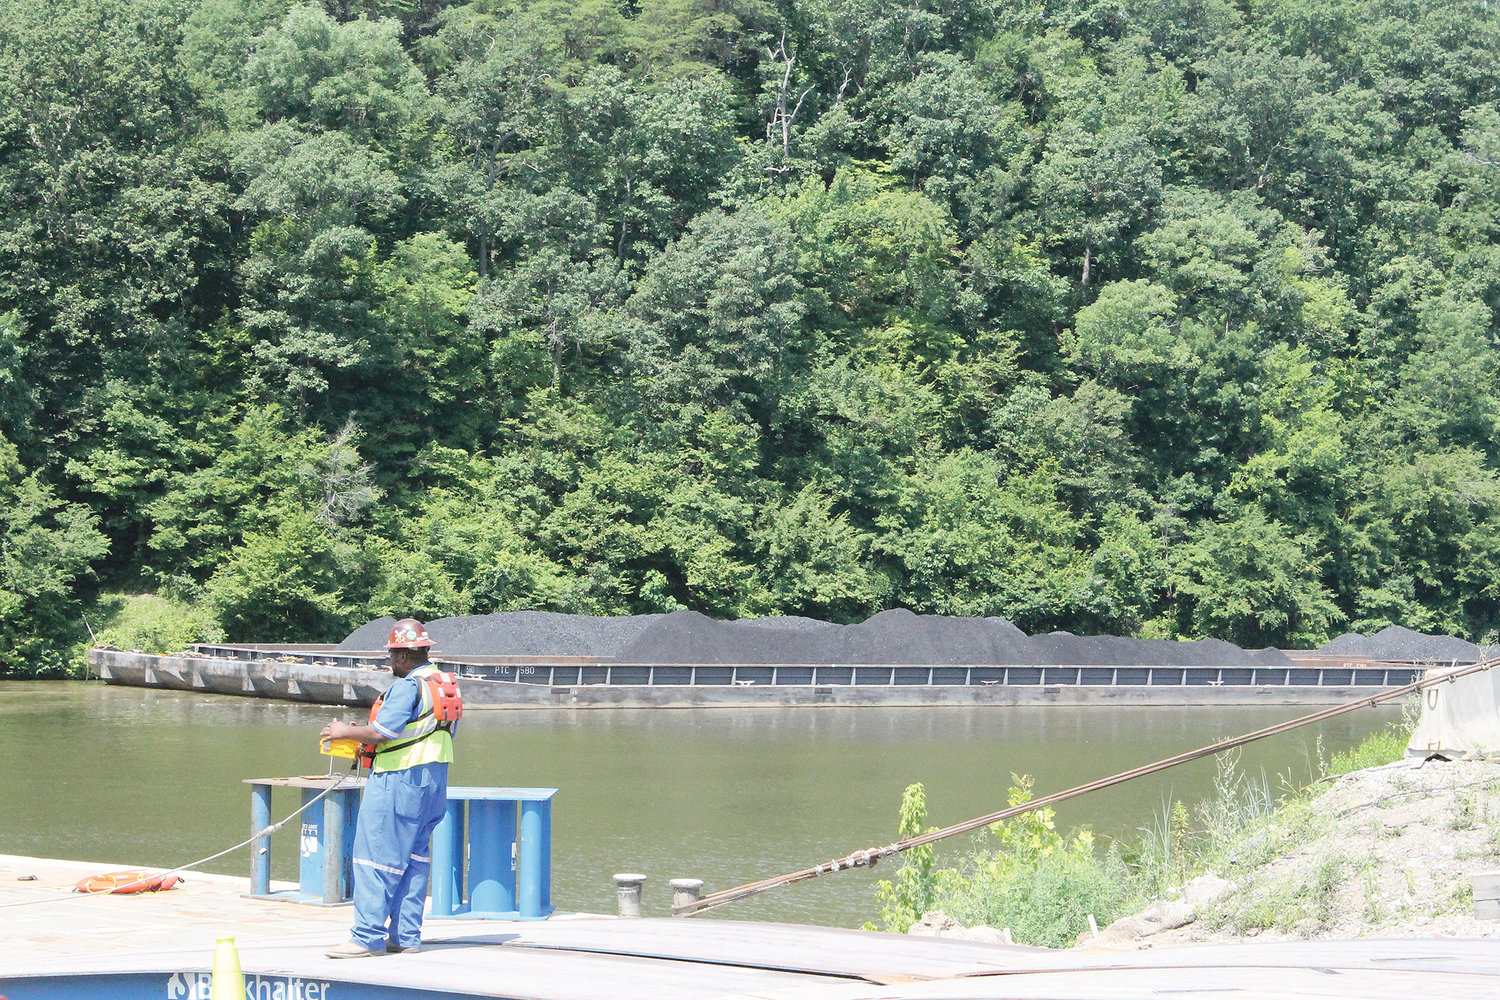 An Alabama Power employee is seen near a barge loaded with coal at Gorgas Steam Plant in 2014.